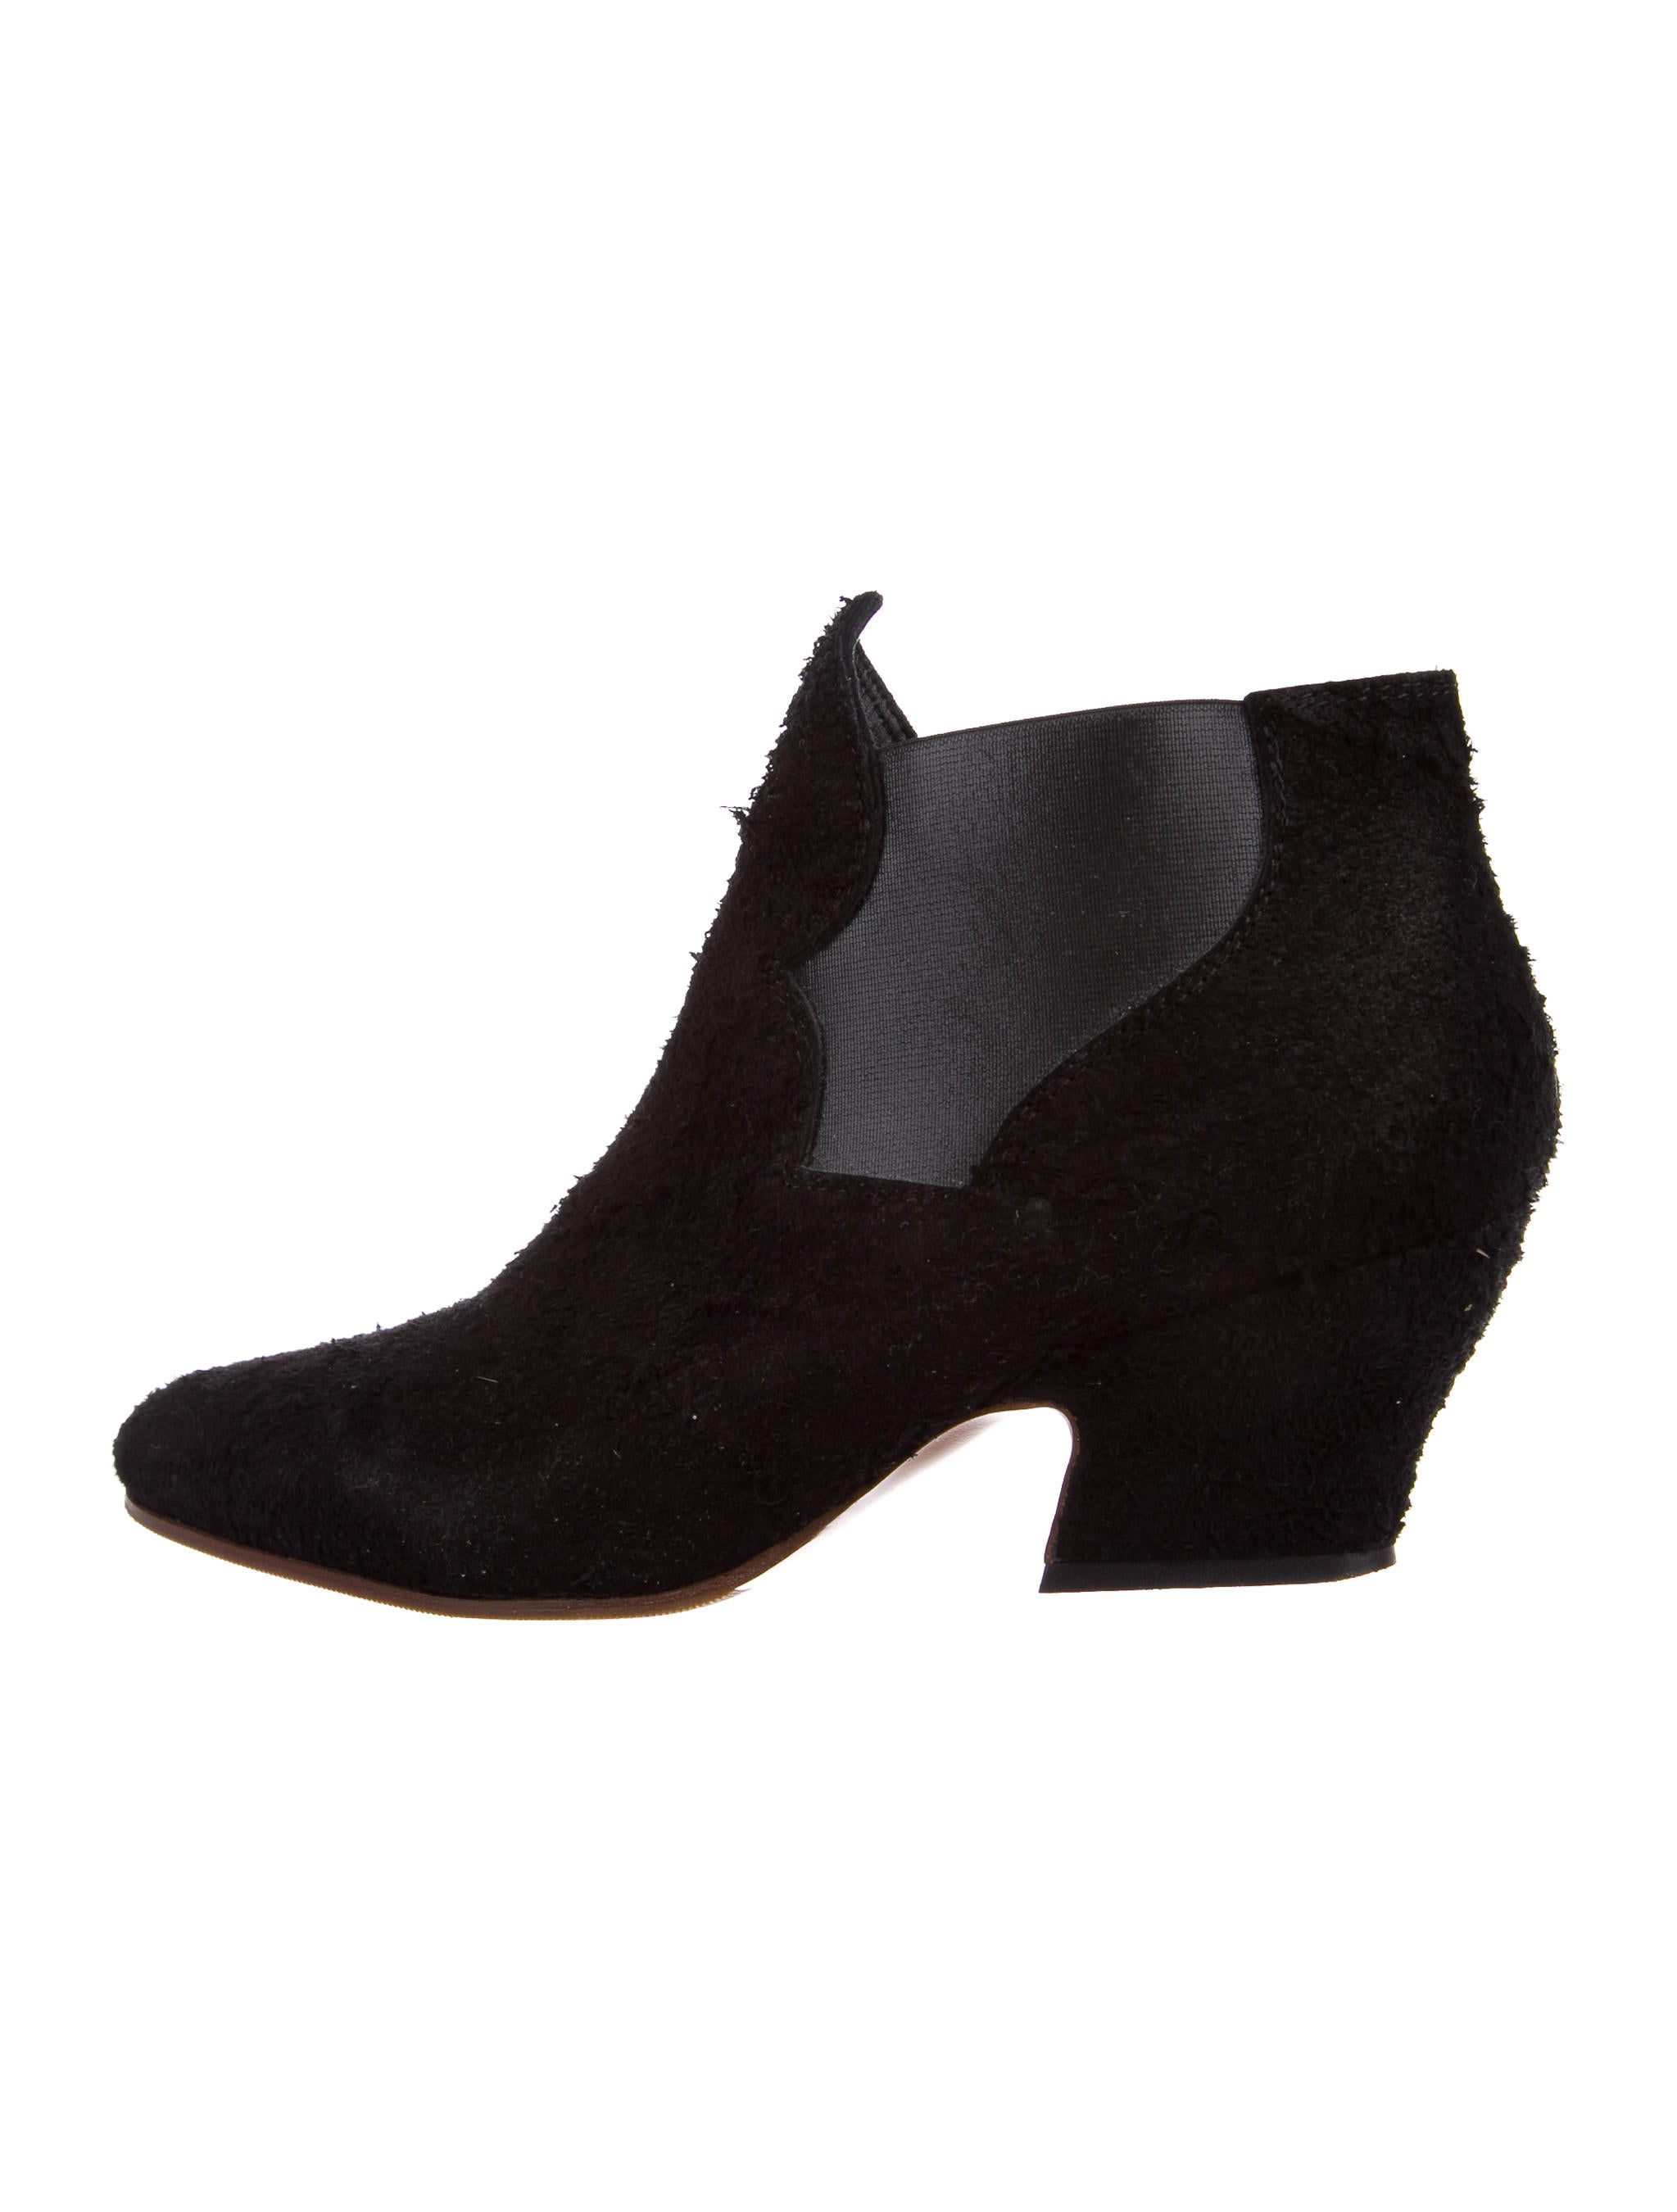 Acne Studios Alma Semi Pointed-Toe Ankle Boots best store to get online outlet 2014 new clearance 2014 newest outlet recommend discount purchase mHI8OqsYYl